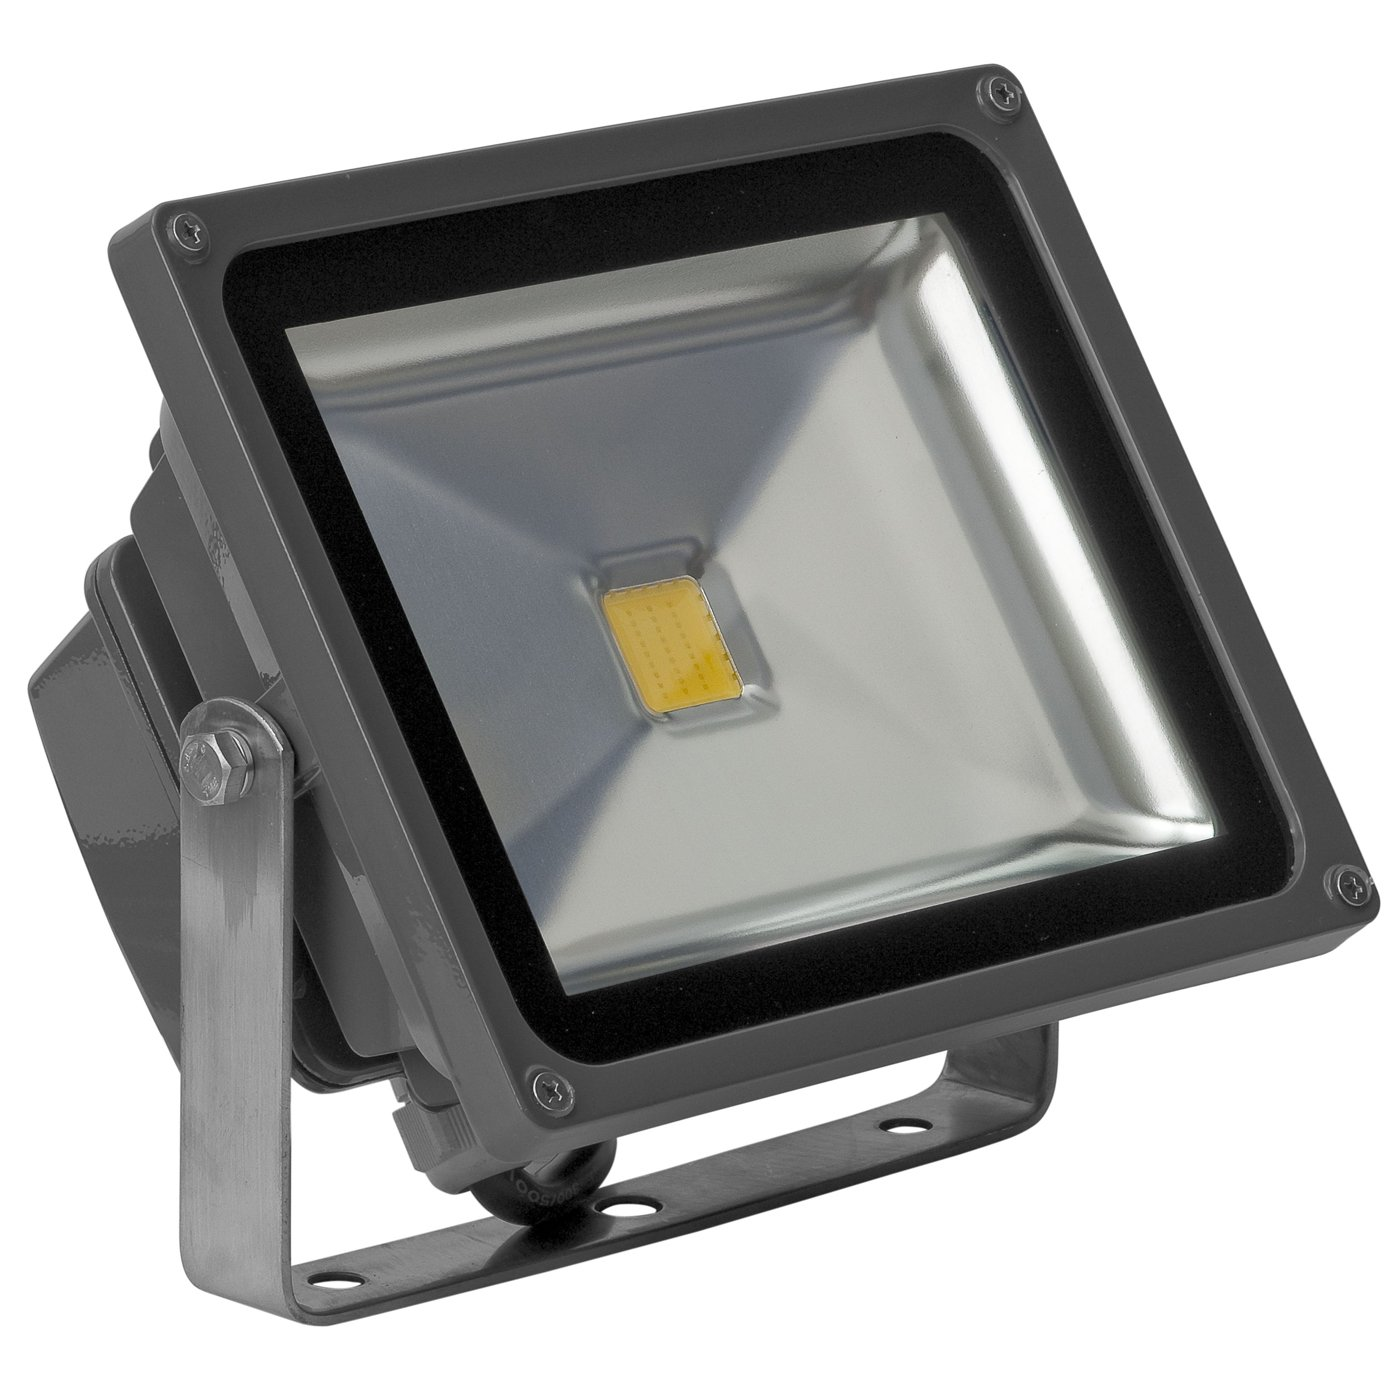 Led Light Fixture Manufacturers In India: Led Flood Light Manufacturer In Dhaka. Bangladesh By ONE